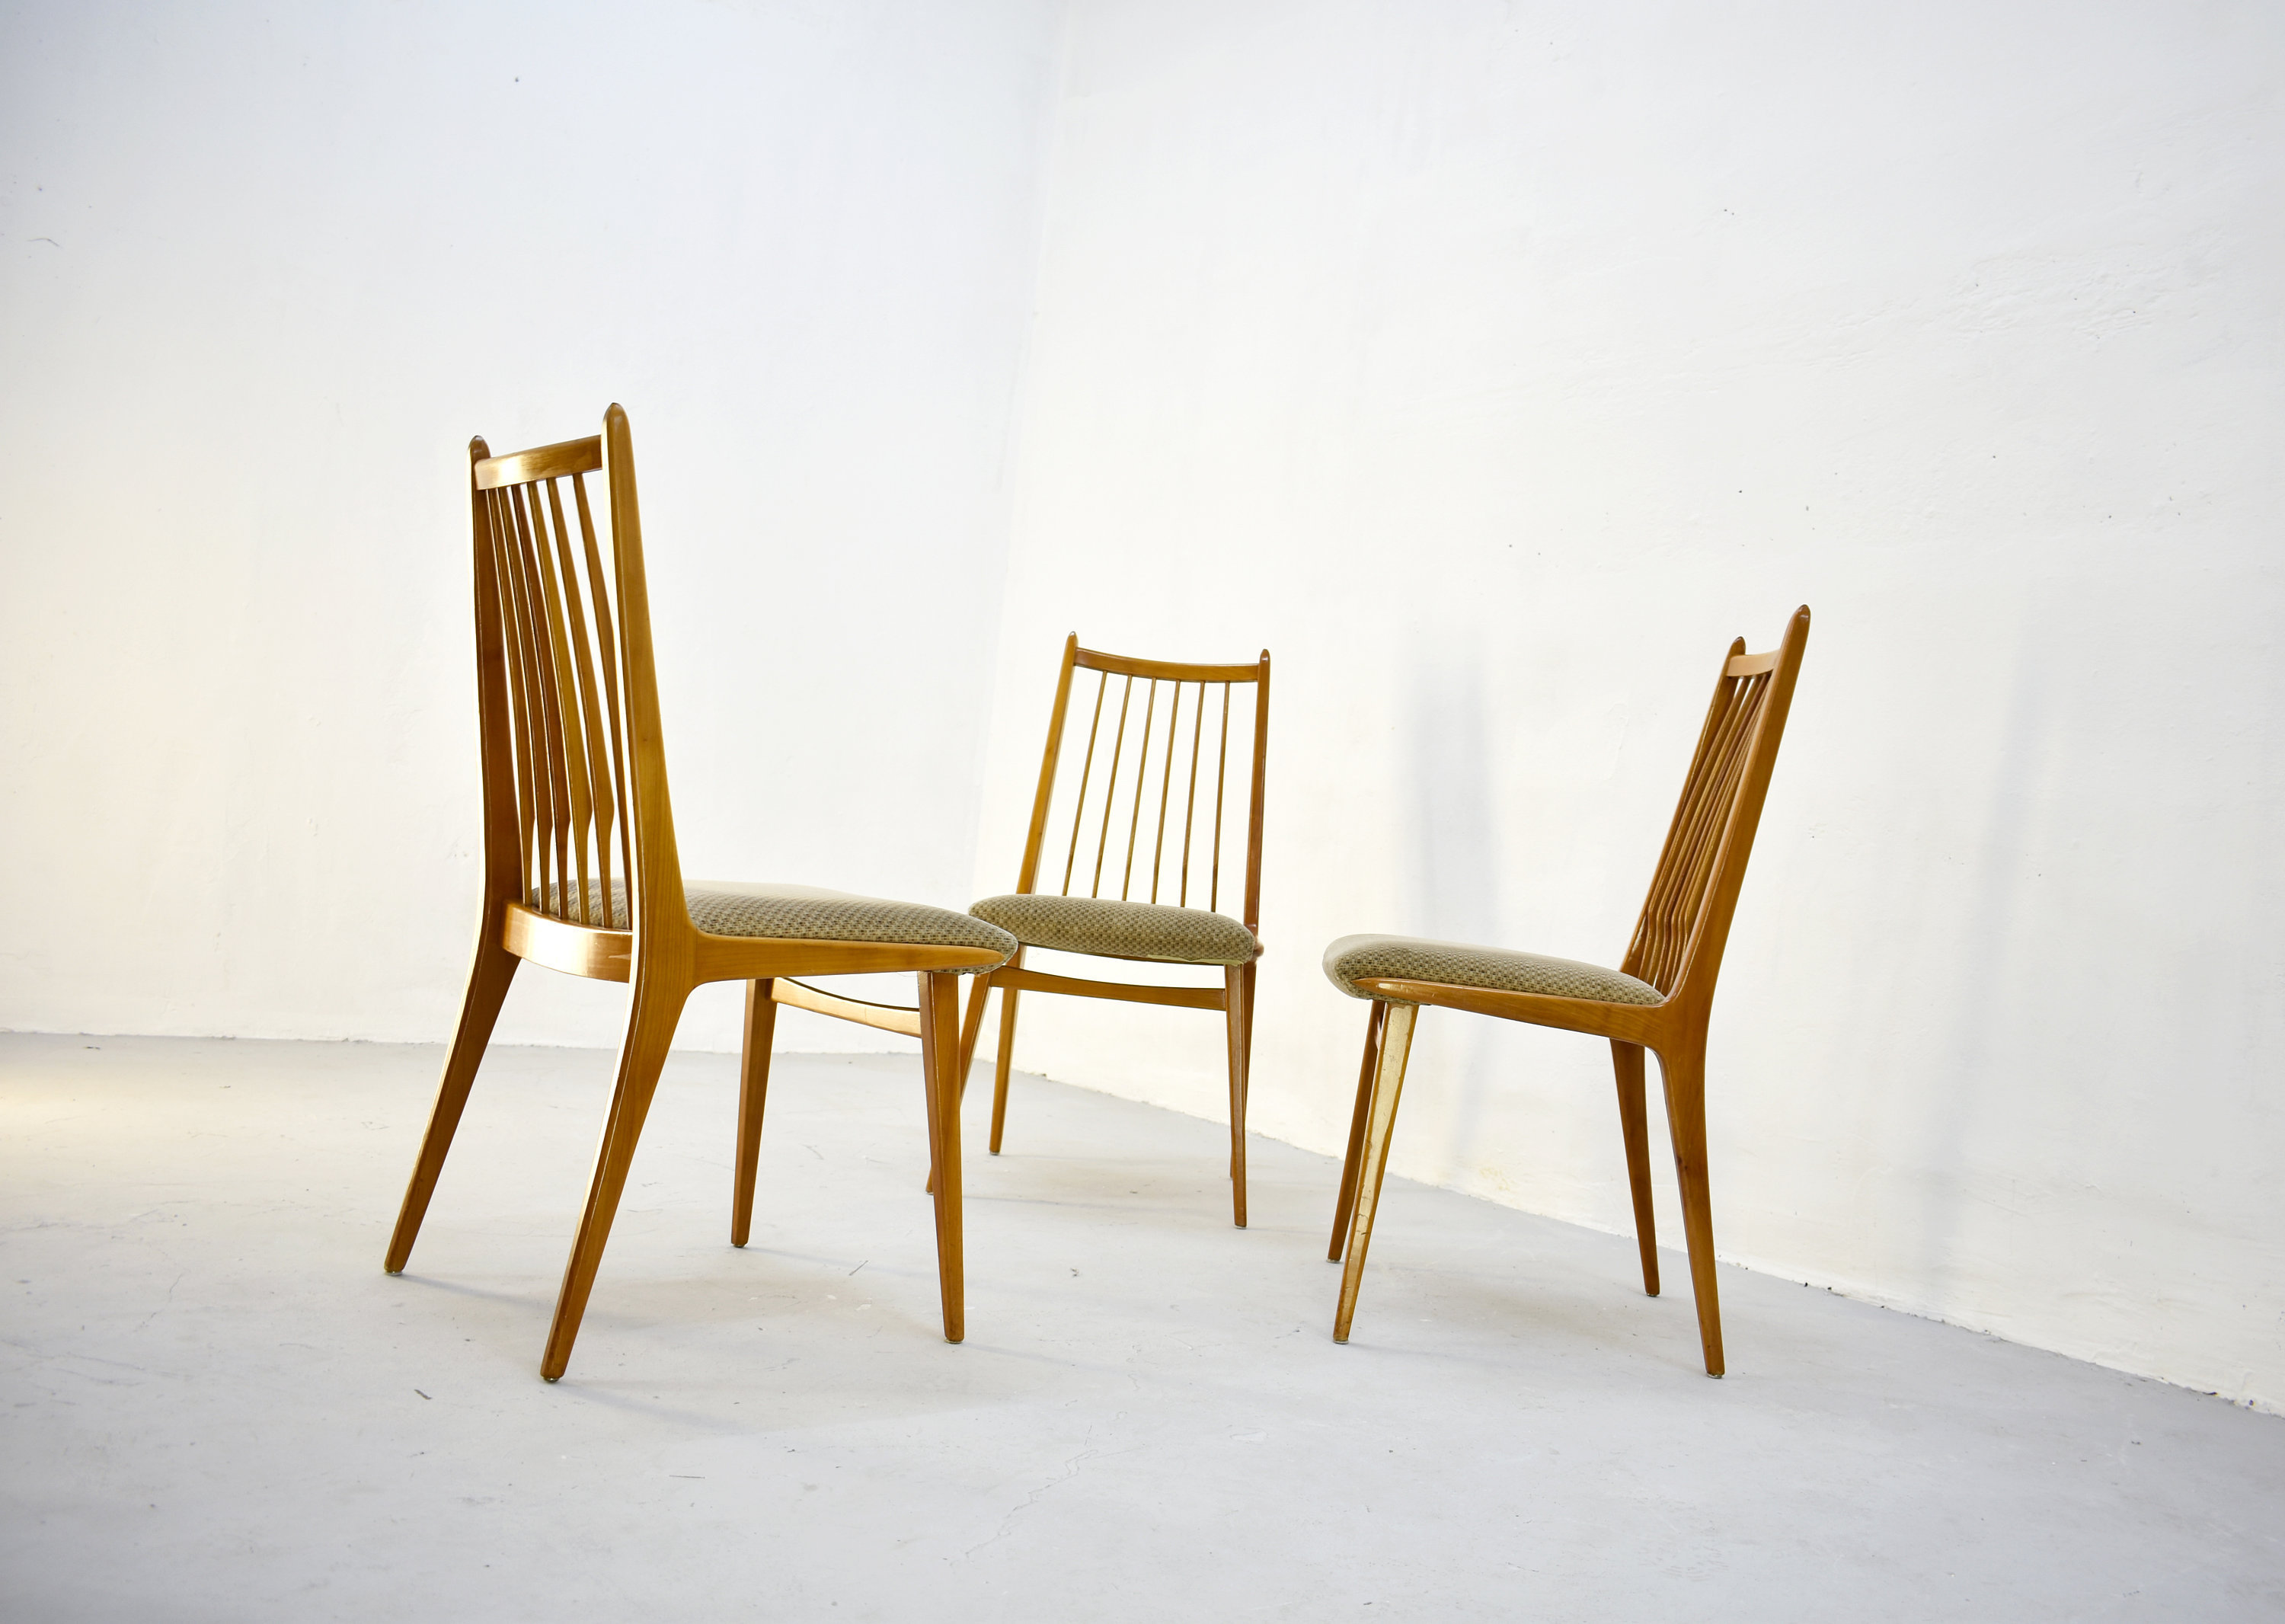 1/3 Vintage Mid Century Modern Wooden Dining Chairs By Casala, Germany  1960s,